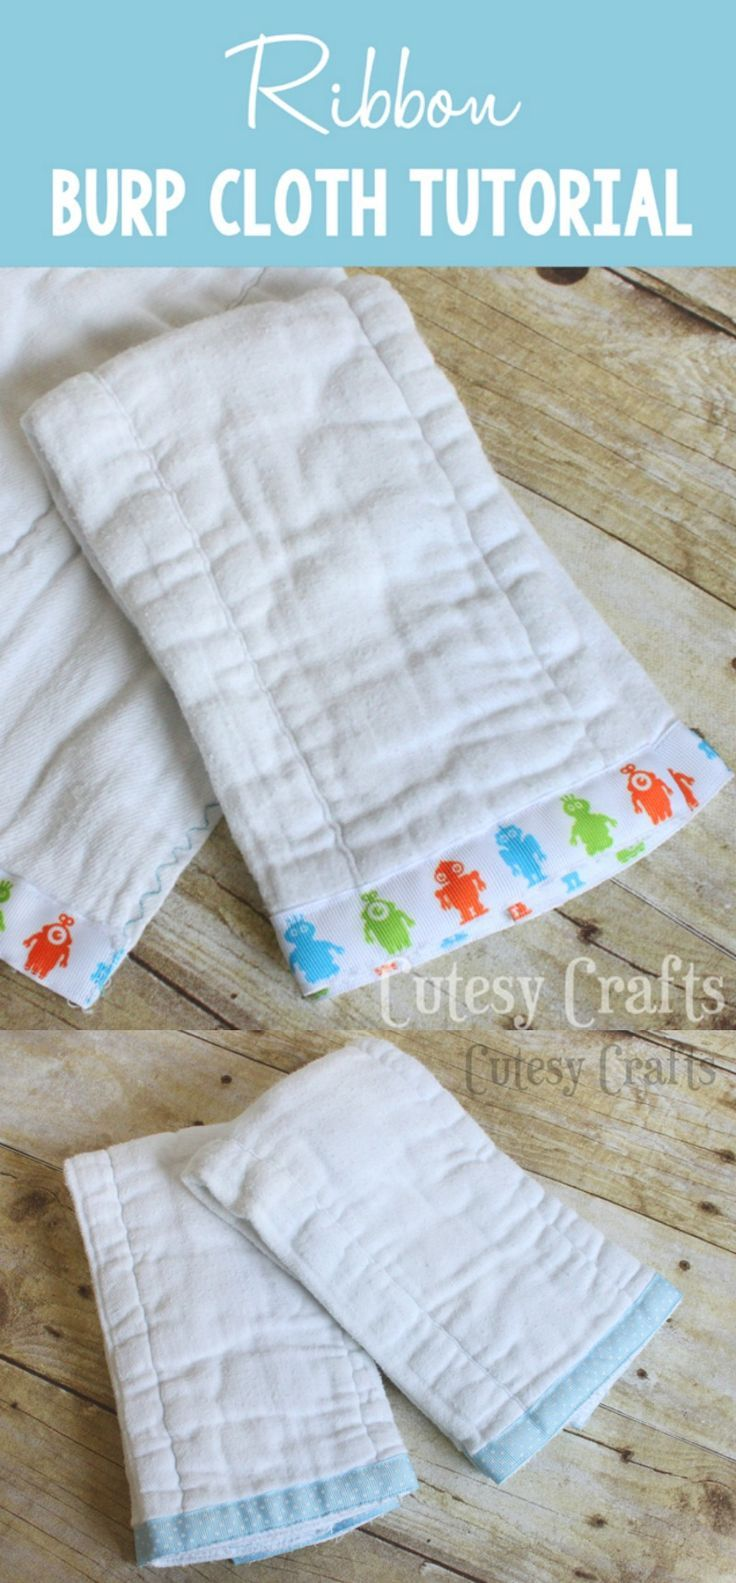 Add a little bit of ribbon and some decorative stitching, and you've got yourself some cute and custom burp cloths!